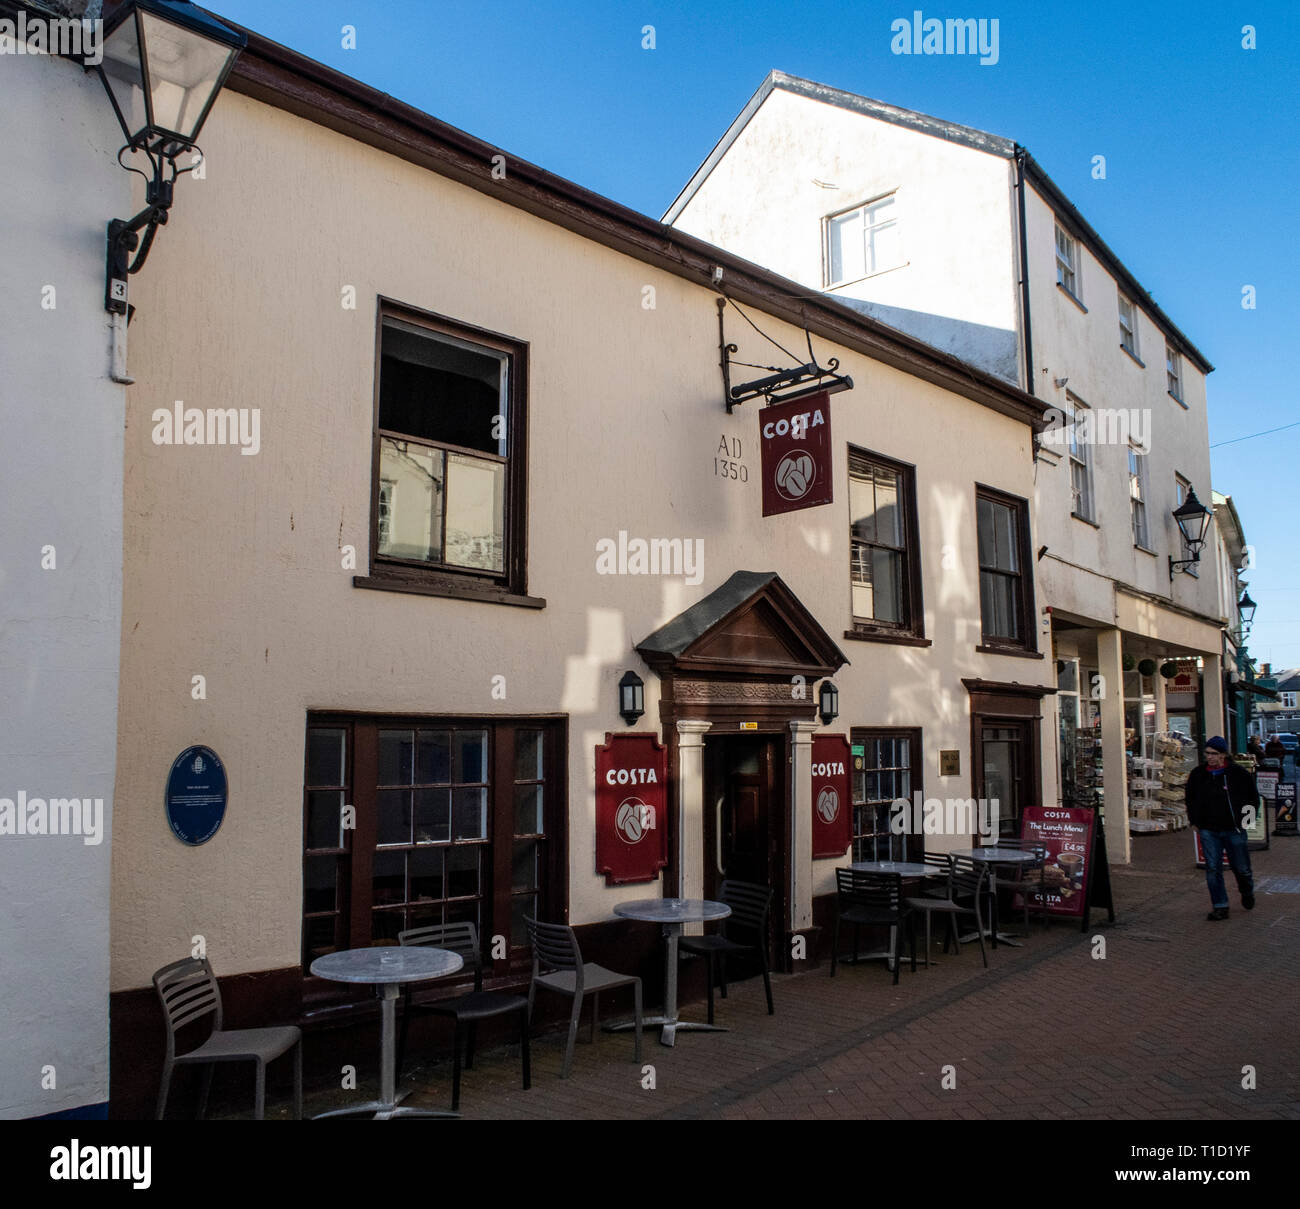 Costa coffee premises on Old Fore Street, Sidmouth, in the premises of the Old Ship Inn, in part dating to 1350 ad. Stock Photo